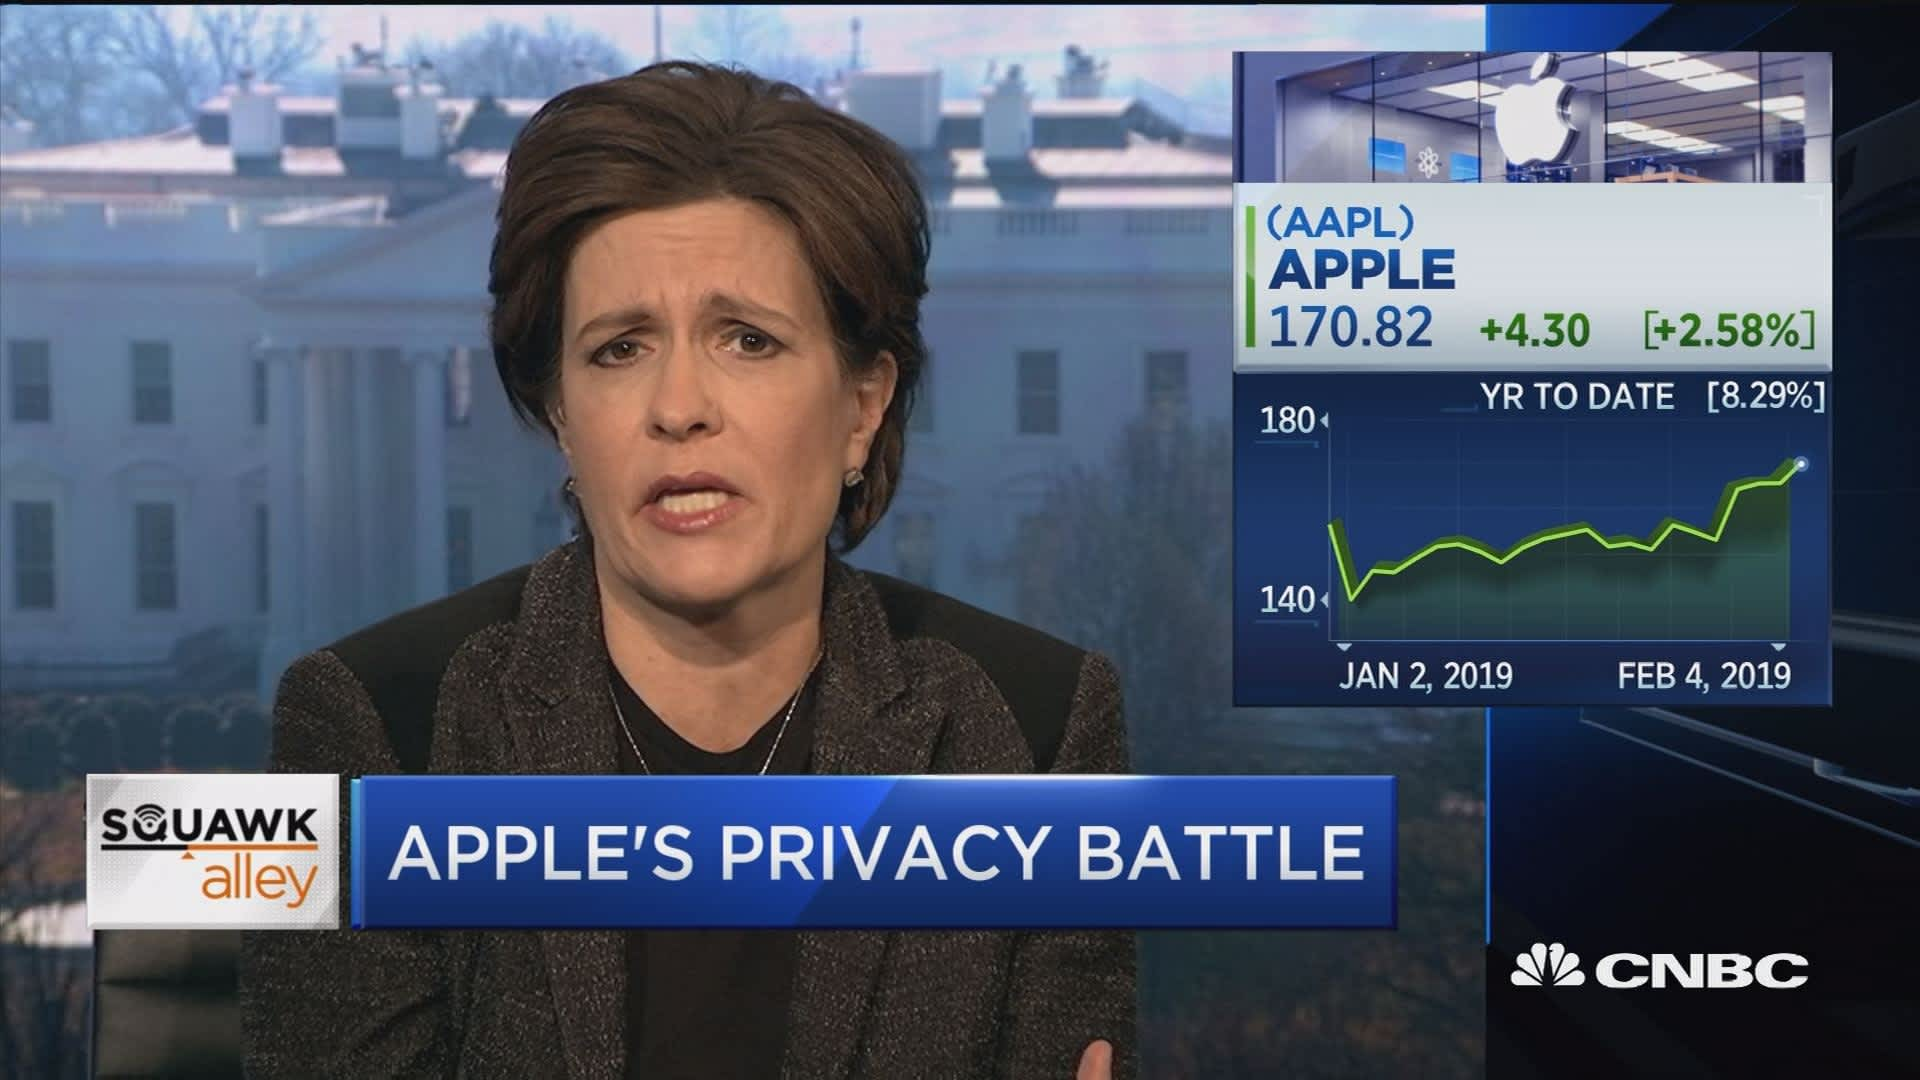 It's in Apple's interest to say privacy is important to them, says Kara  Swisher